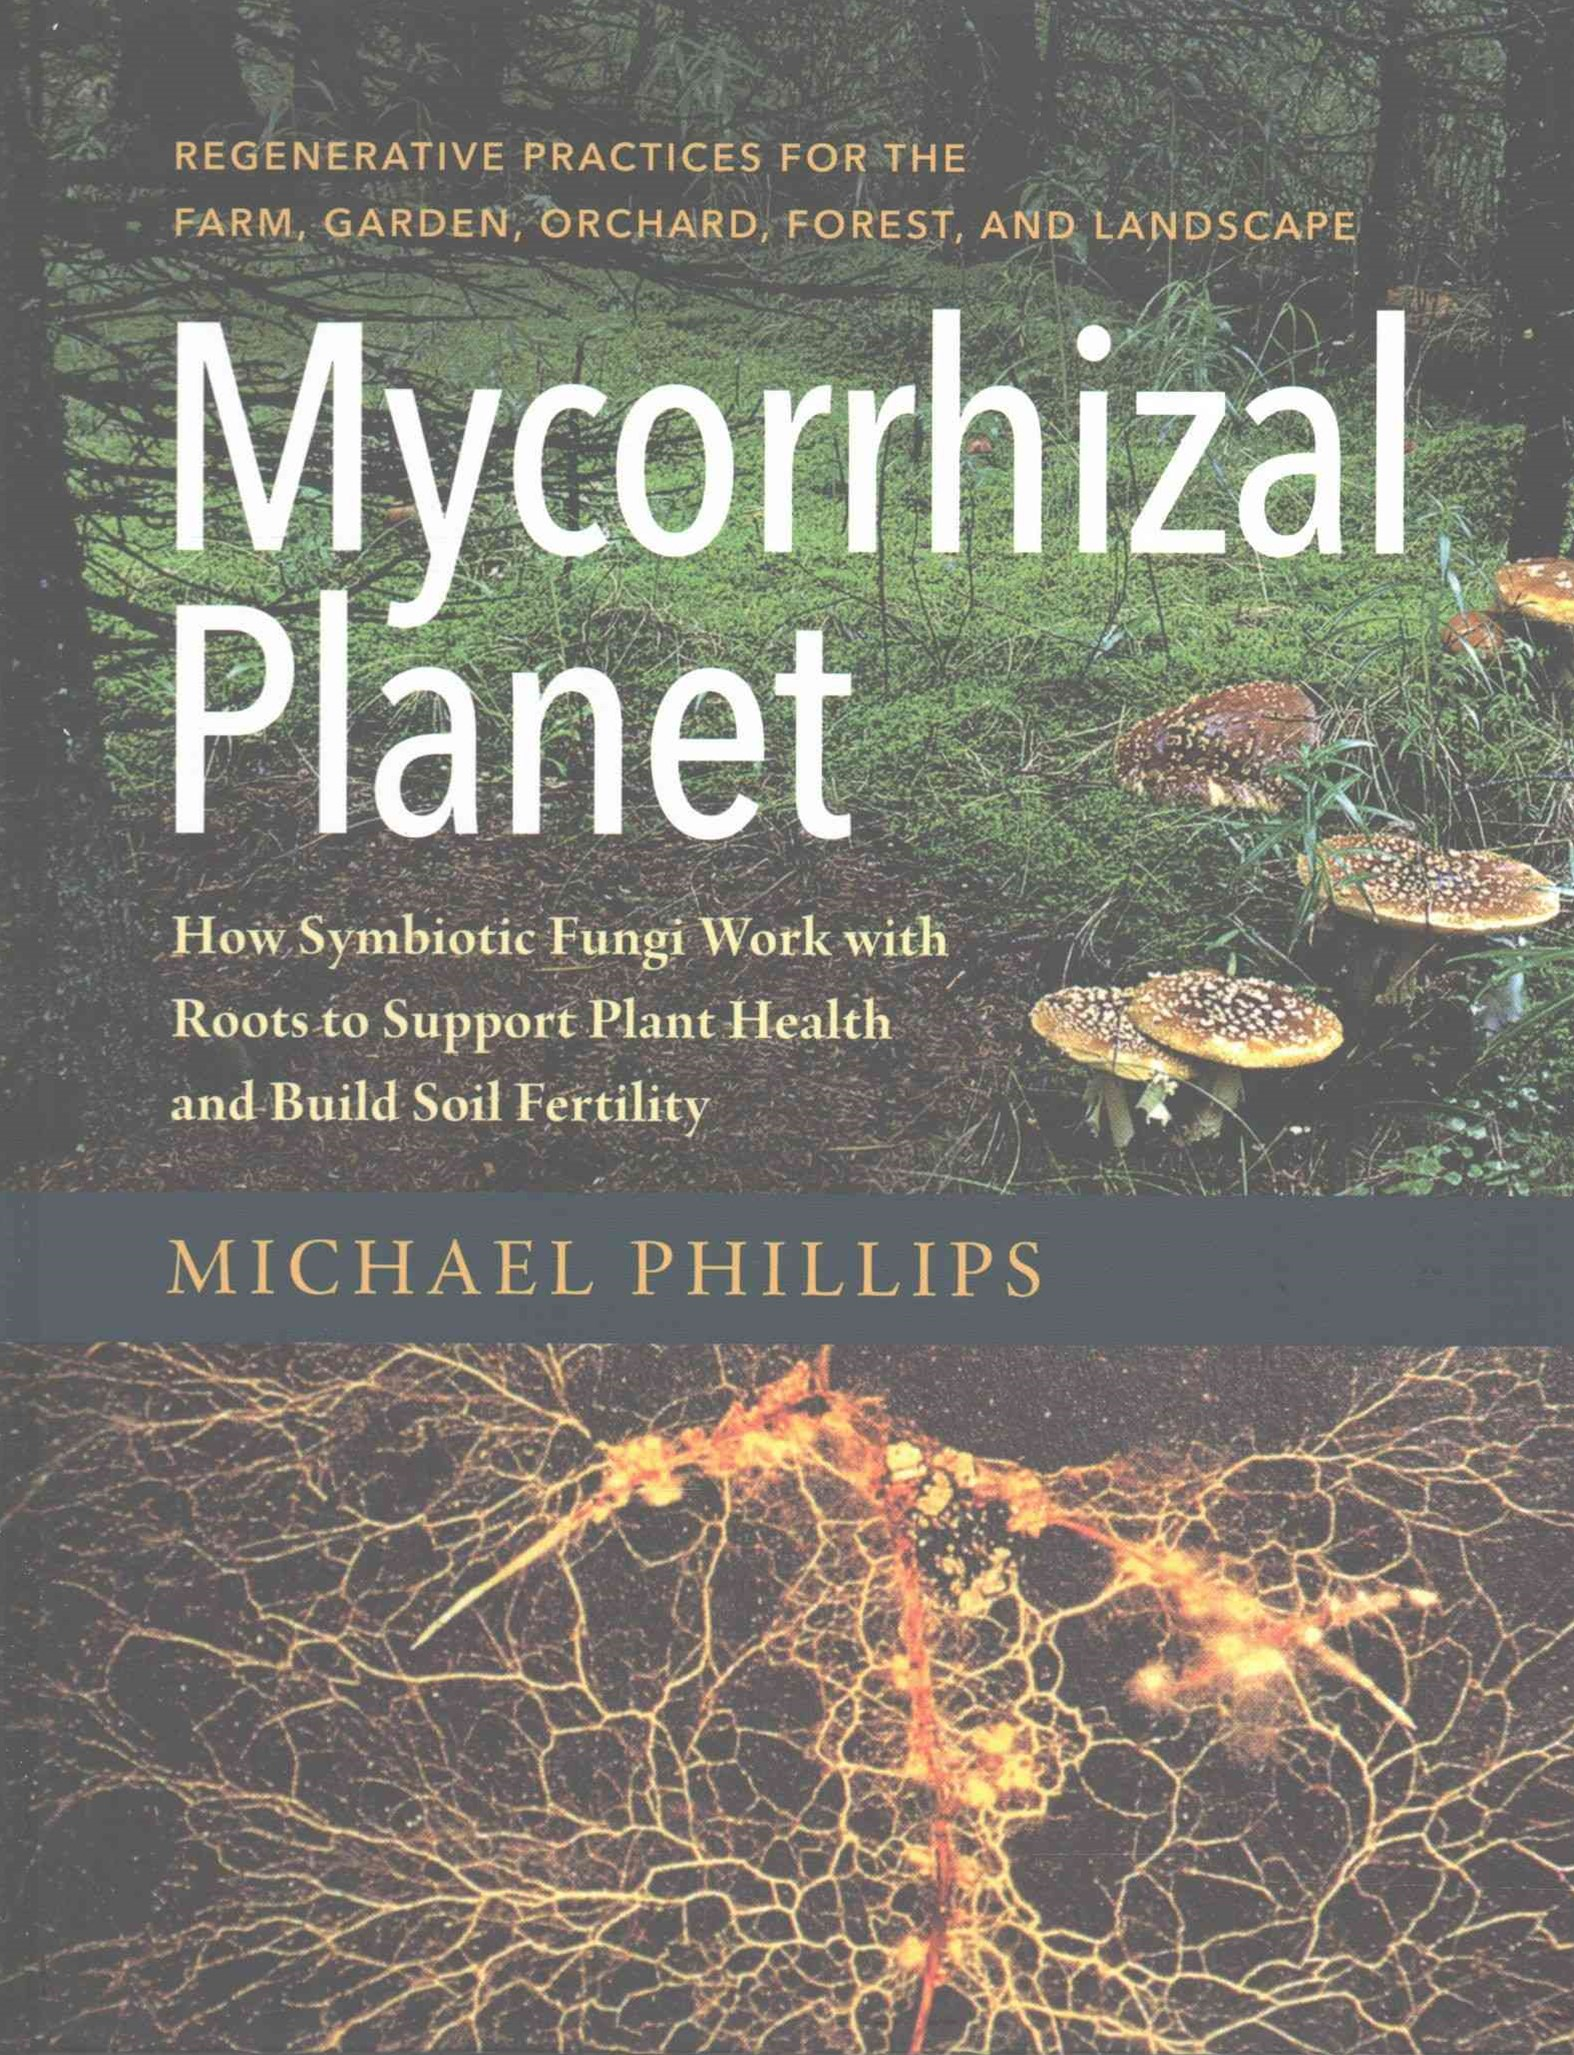 Mycorrhizal Planet: How Symbiotic Fungi Work with Roots to Support Plant Health and Build Soil Fert